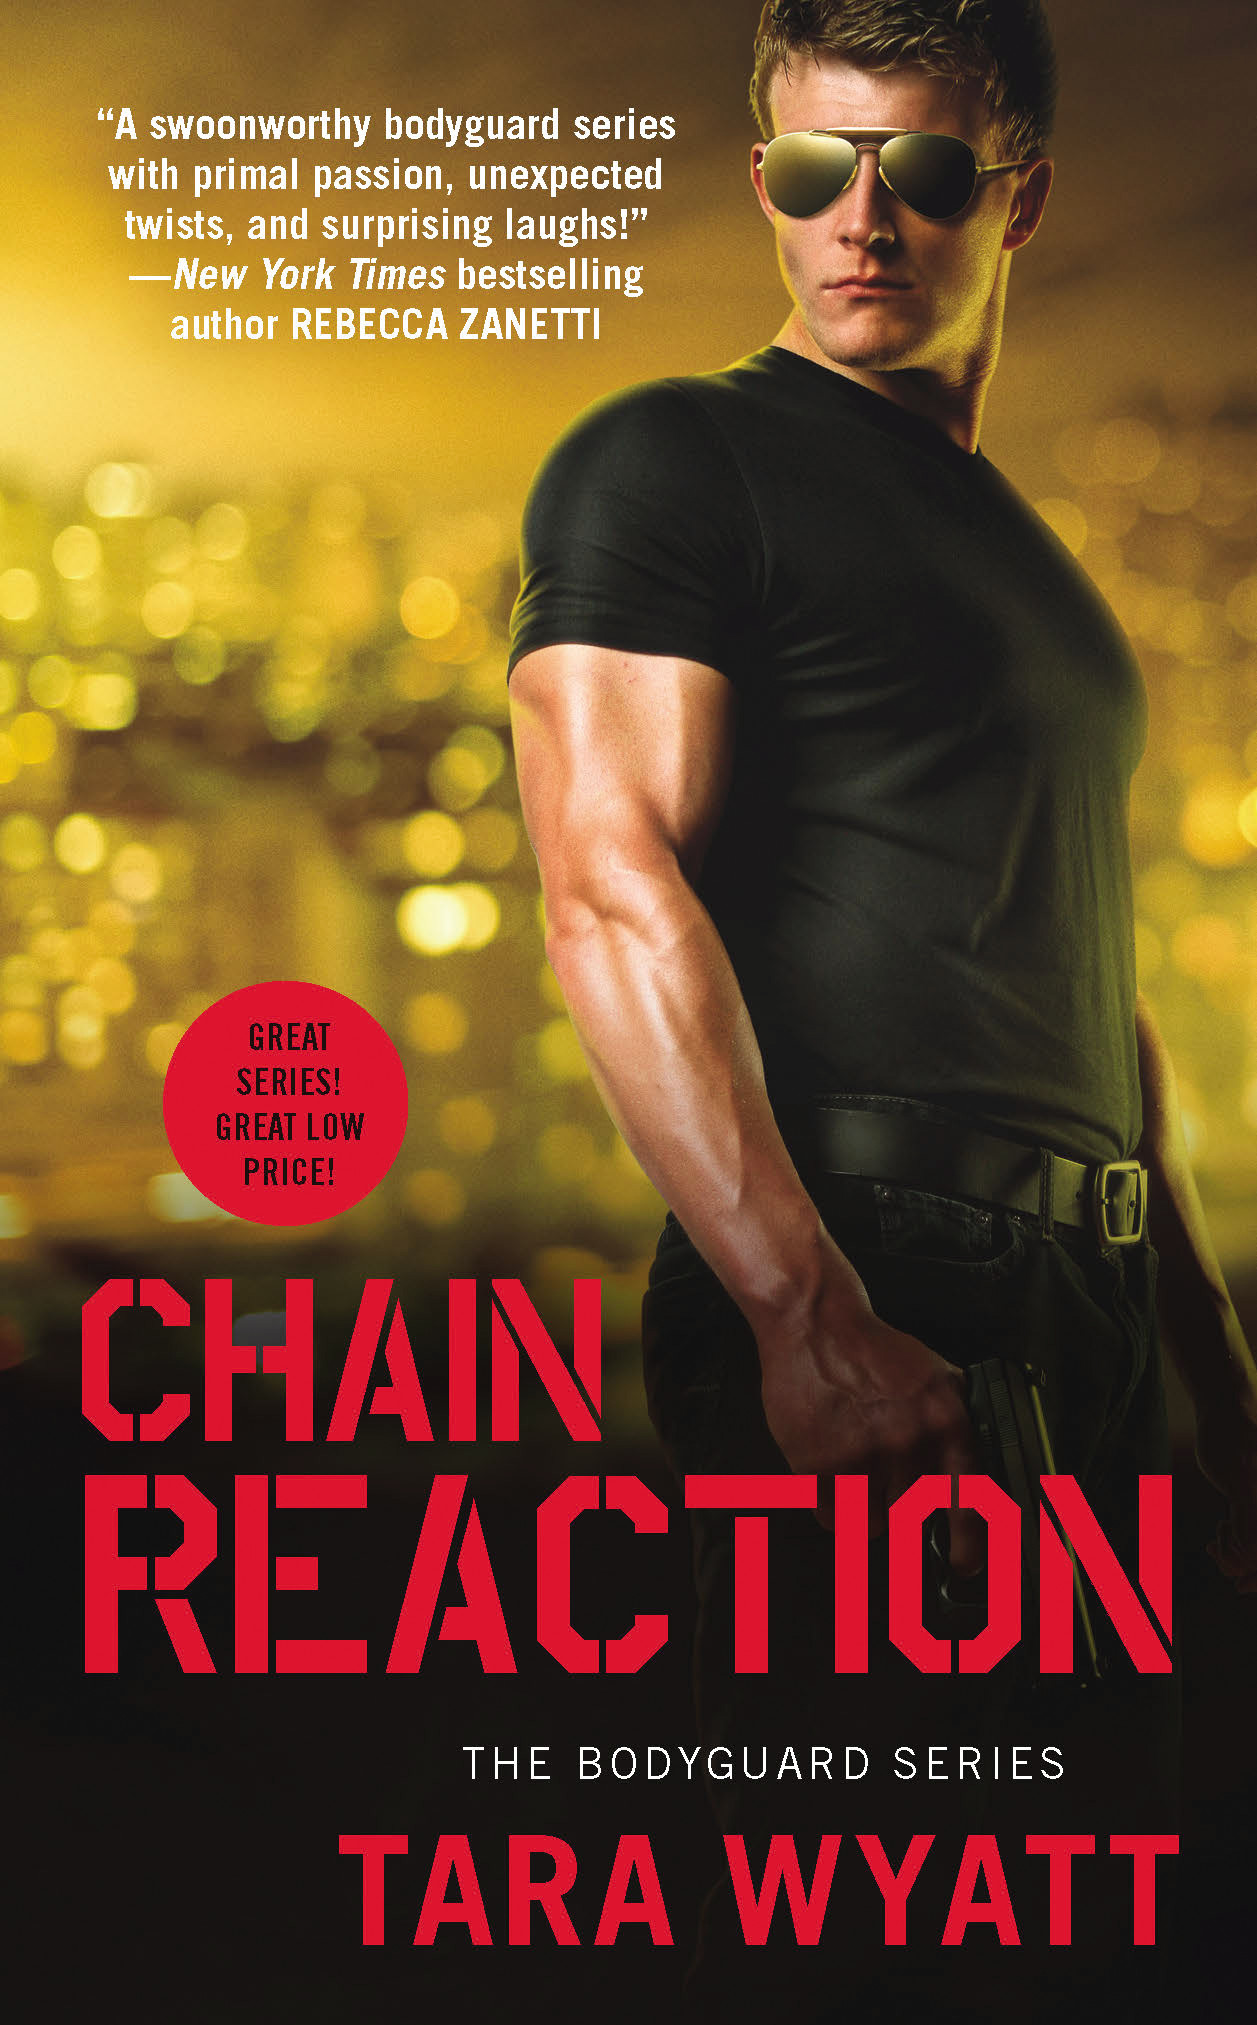 Chain Reaction by Tara Wyatt The Bodyguard Series Book 3 Romantic Suspense